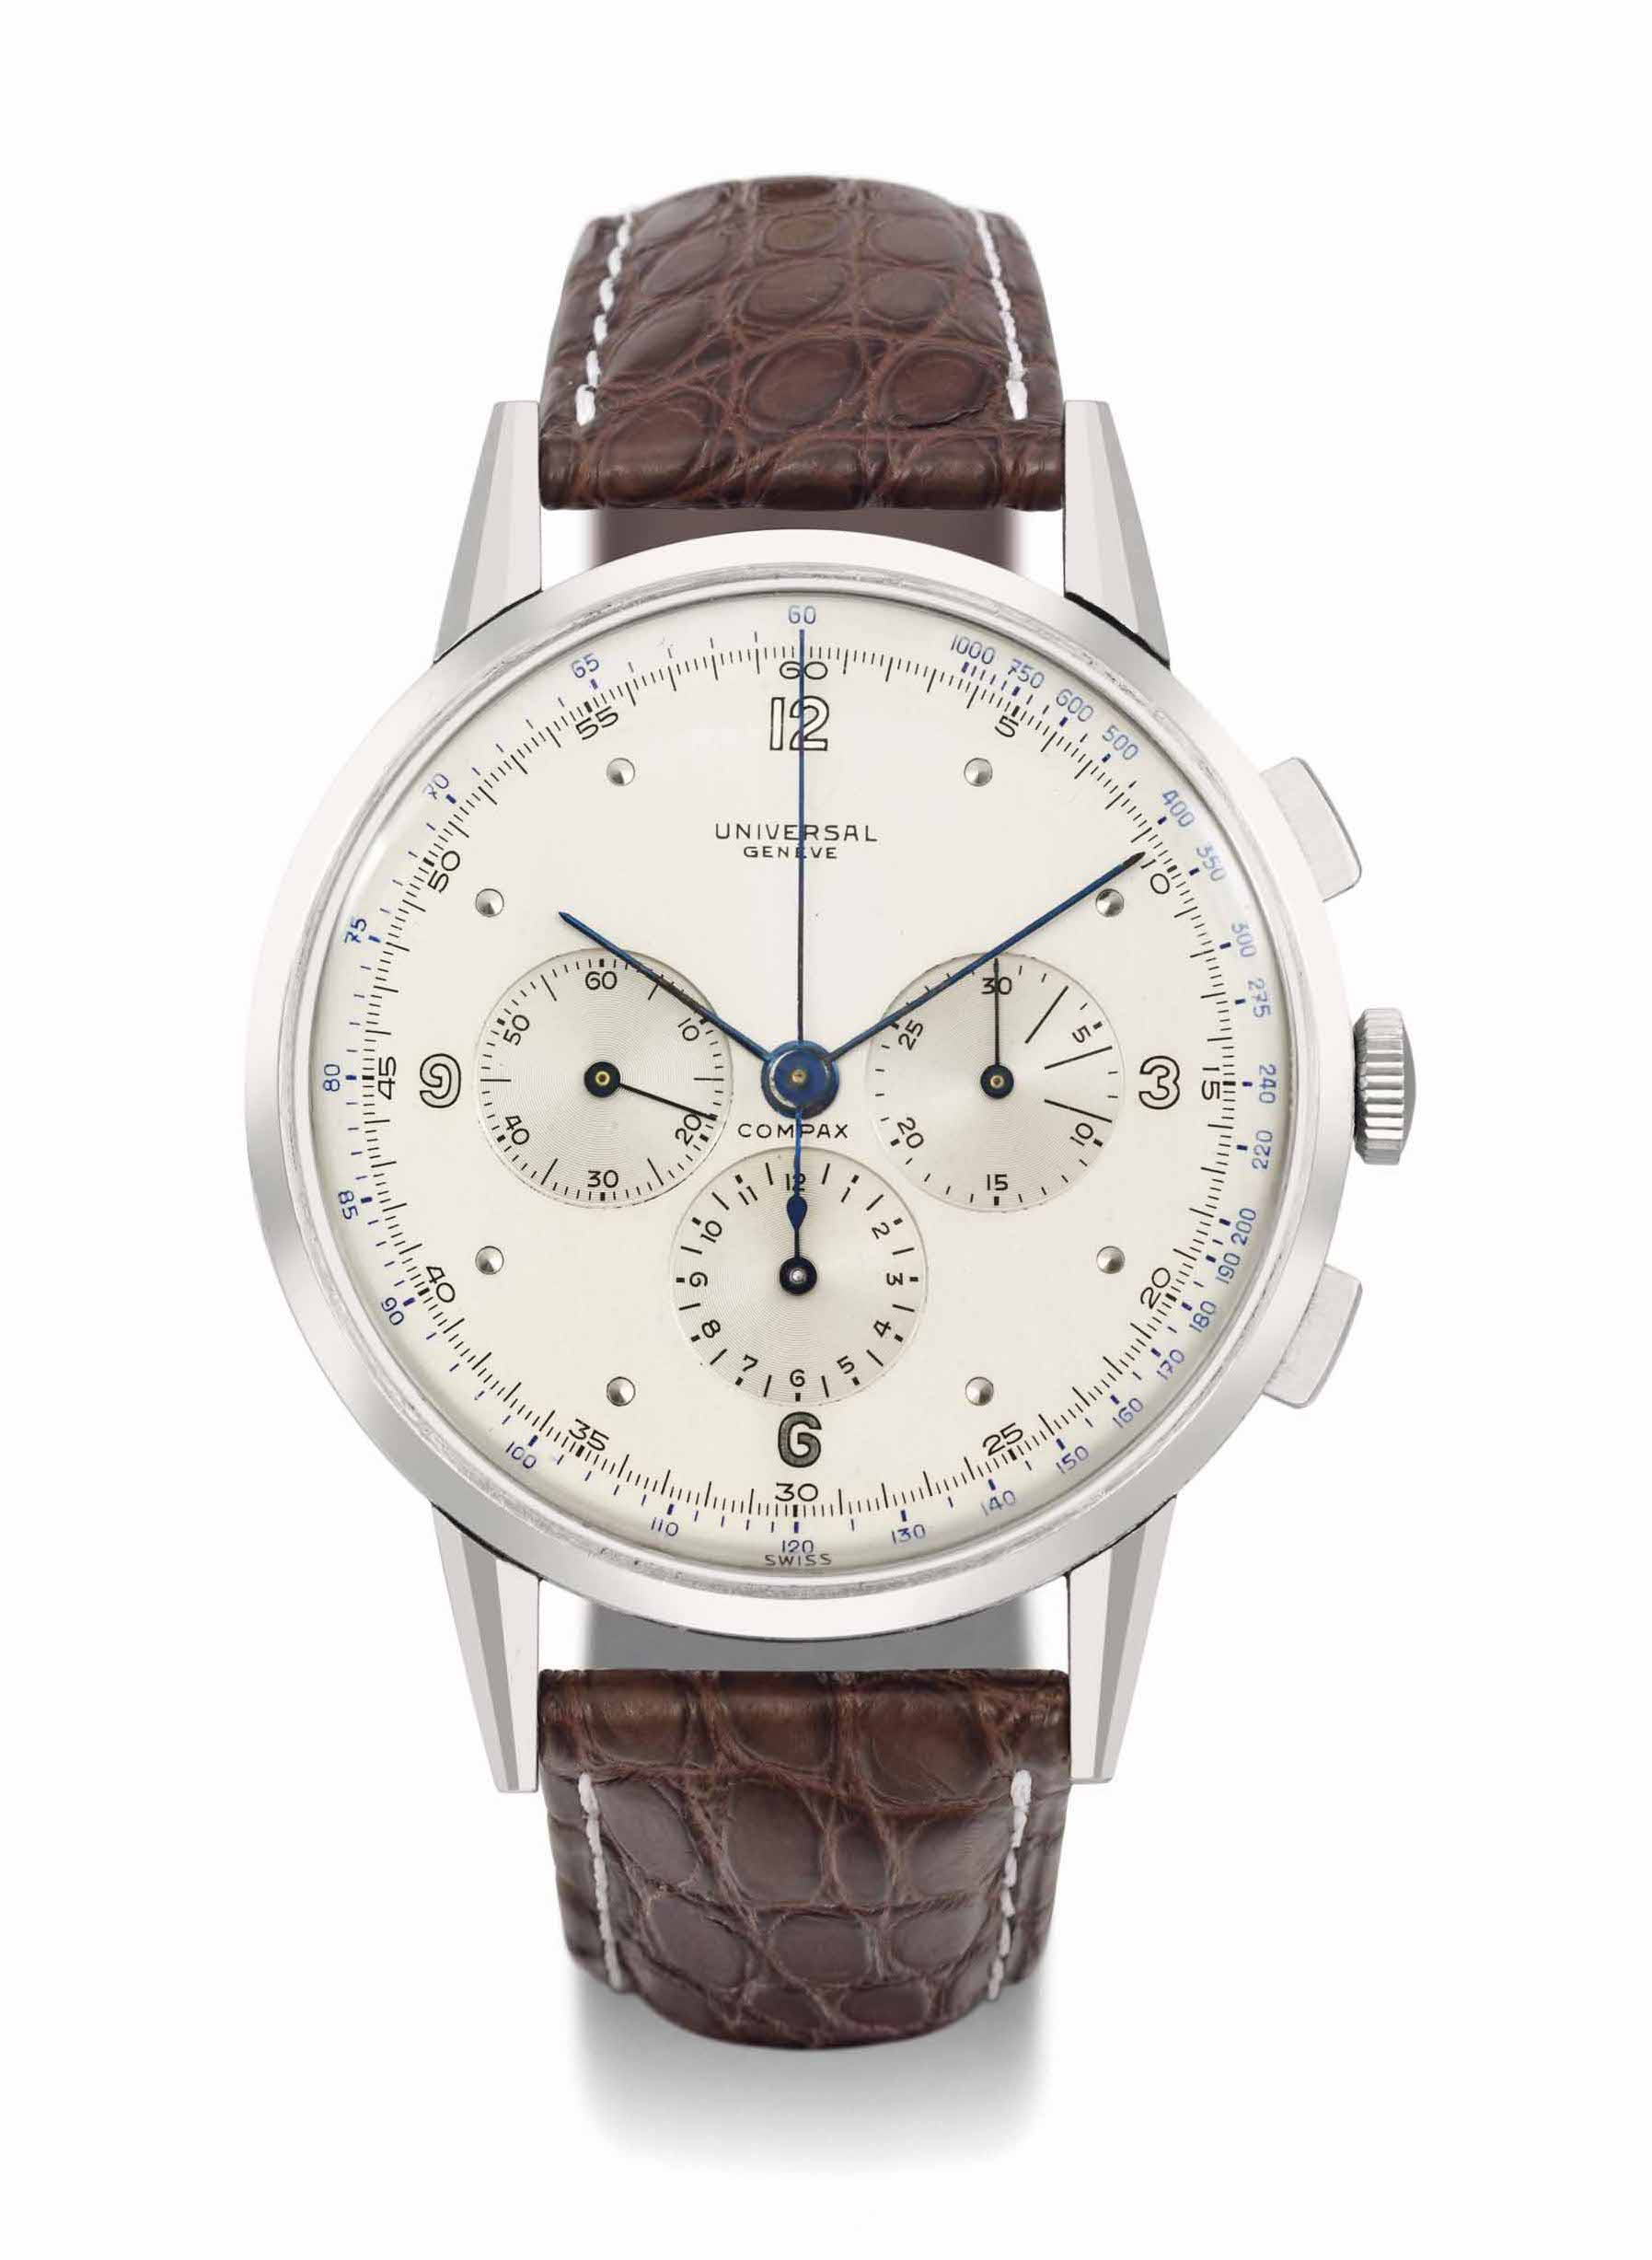 A rare 46mm ref. 22430 Compax by @Christies